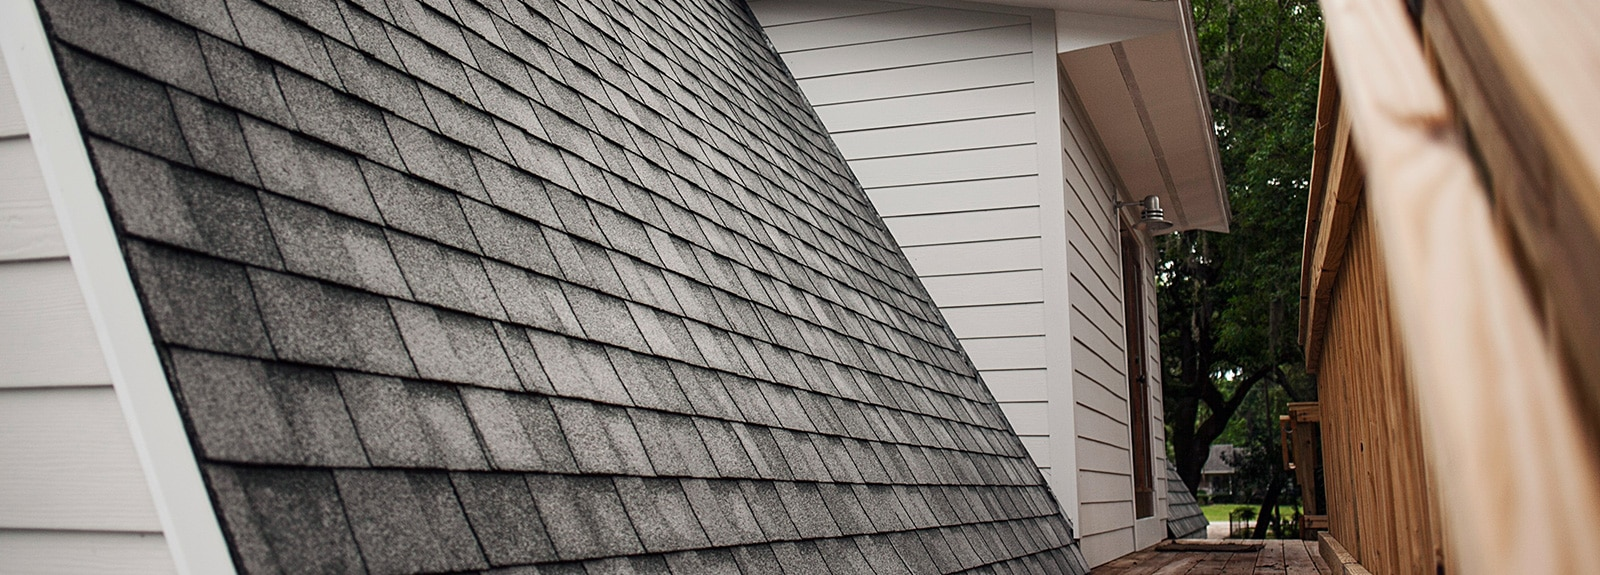 Roofing company gainesville, fl